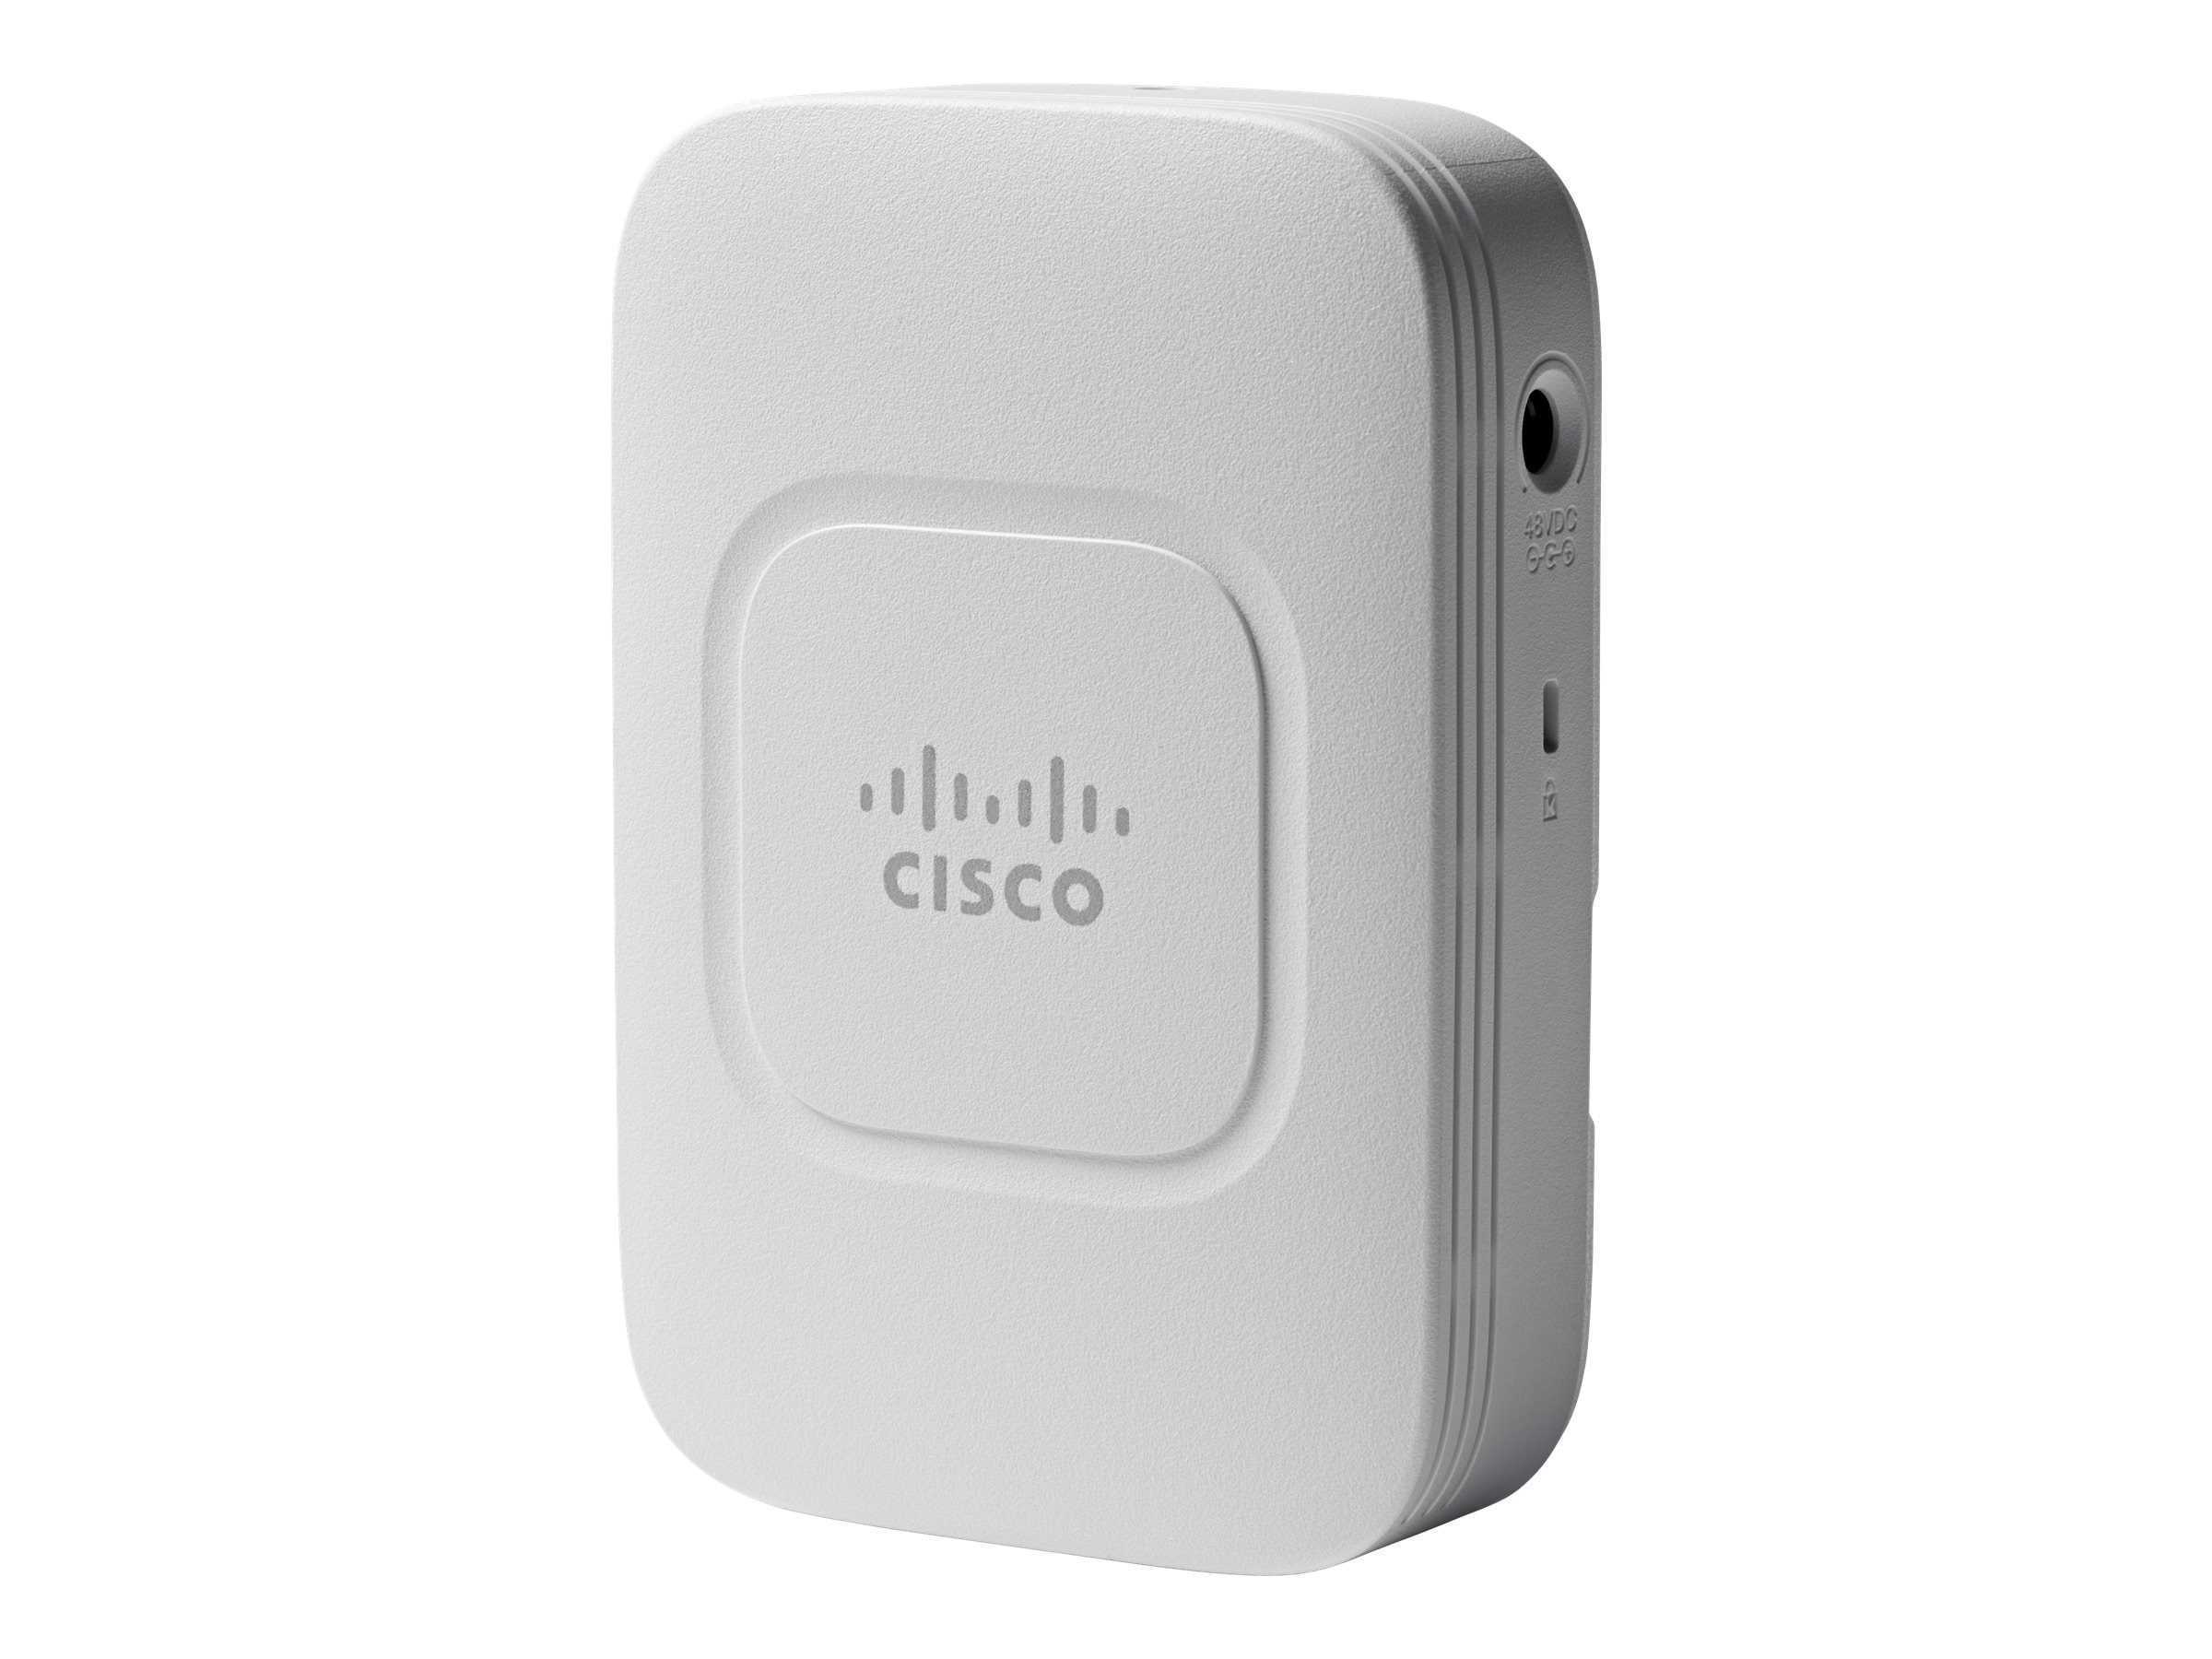 Cisco AIR-CAP702W-HK910 Image 1